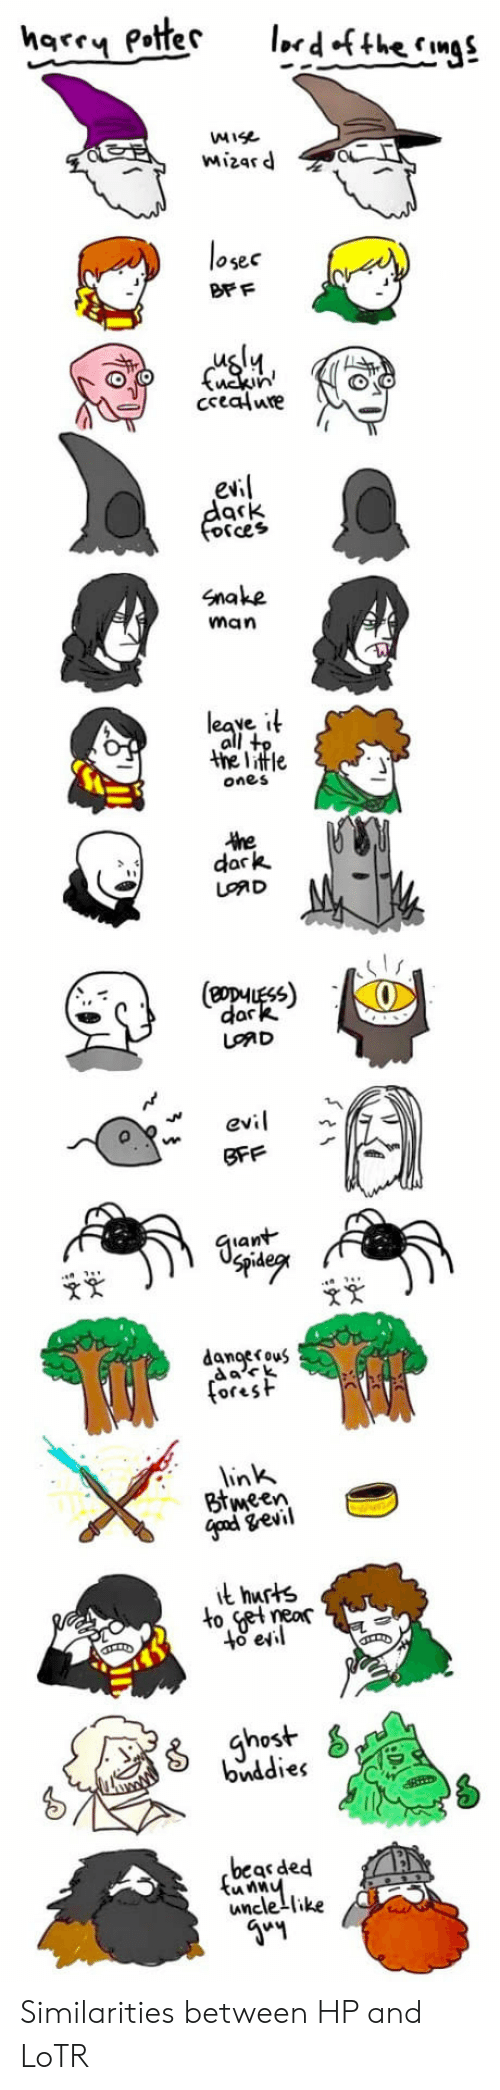 Snake, Sad, and Lotr: ise  mizar d  osec  DF F  evi  Cces  Snake  man  the little  one s  dark  (eopHUESS)  dar  SAD  ev  SFF  an  danoerouS  da々k  in  Btween  neor  lo e  host  bviddies  beas ded  unclelike Similarities between HP and LoTR